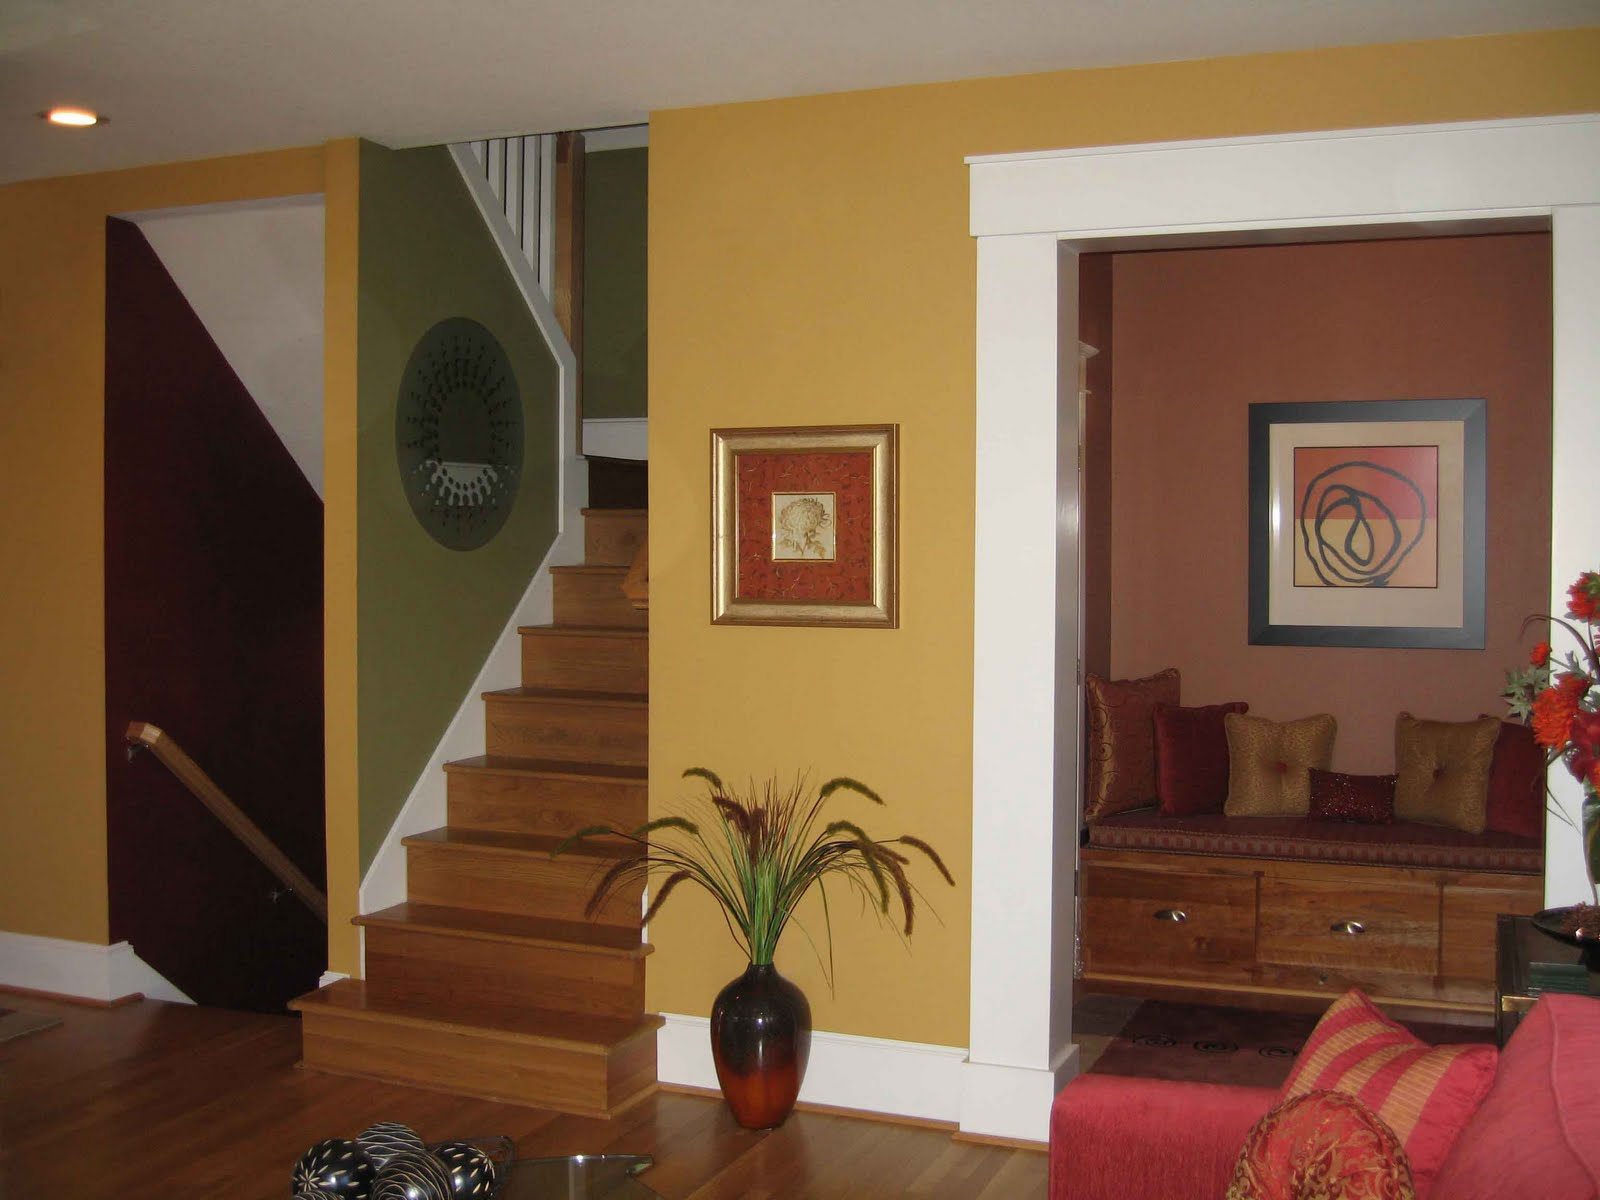 Interior spaces interior paint color specialist in portland oregon color consulting - House interior colours ...